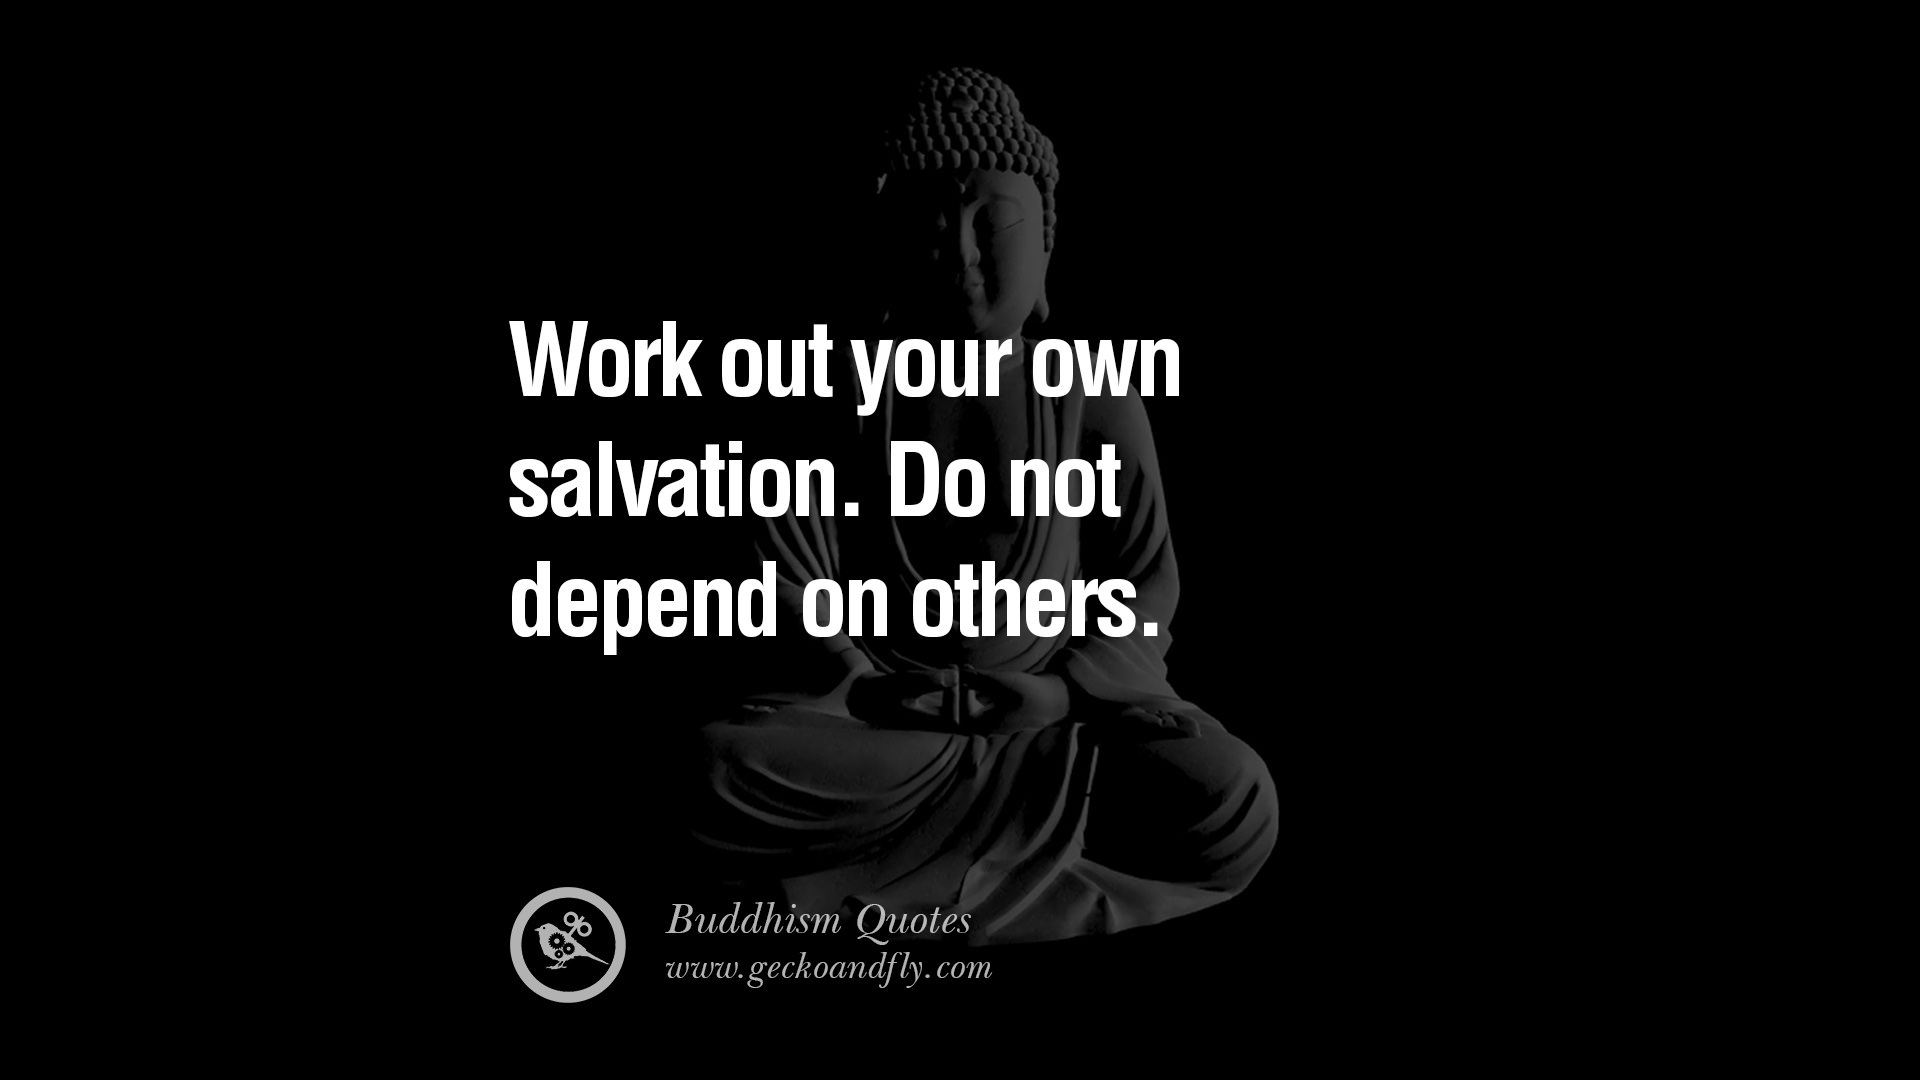 Quotes Zen Cool 13 Zen Buddhism Quotes On Love Anger Management And Salvation